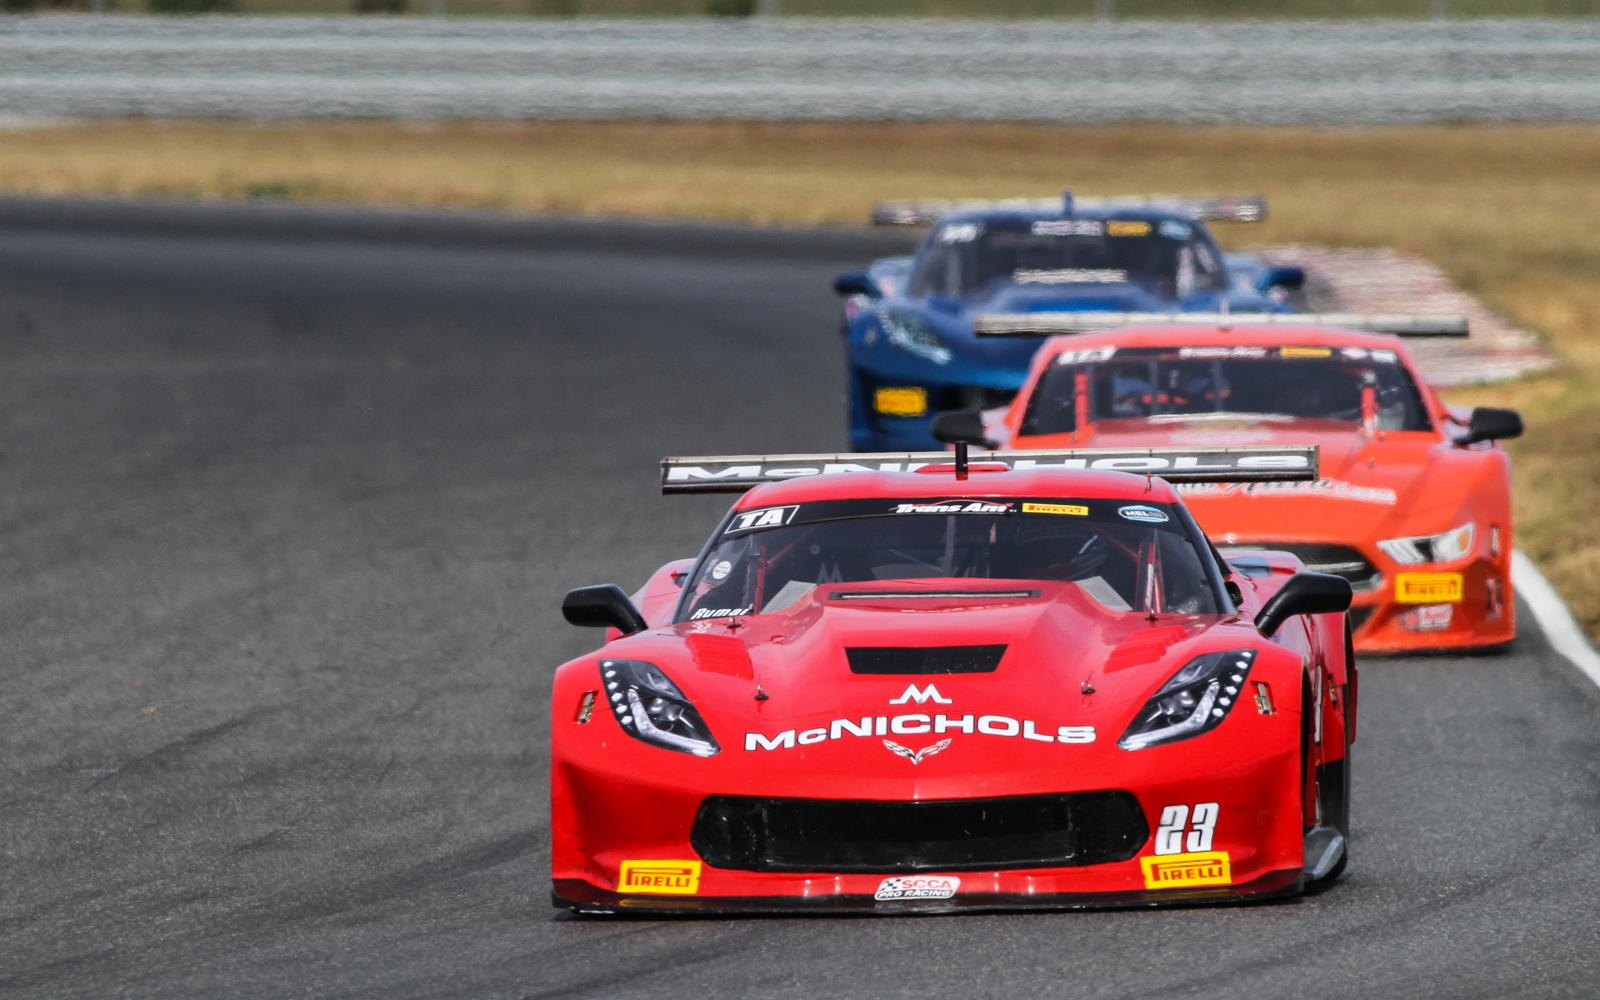 Ruman and Buffomante Set Fast Laps in Final New Jersey Practice